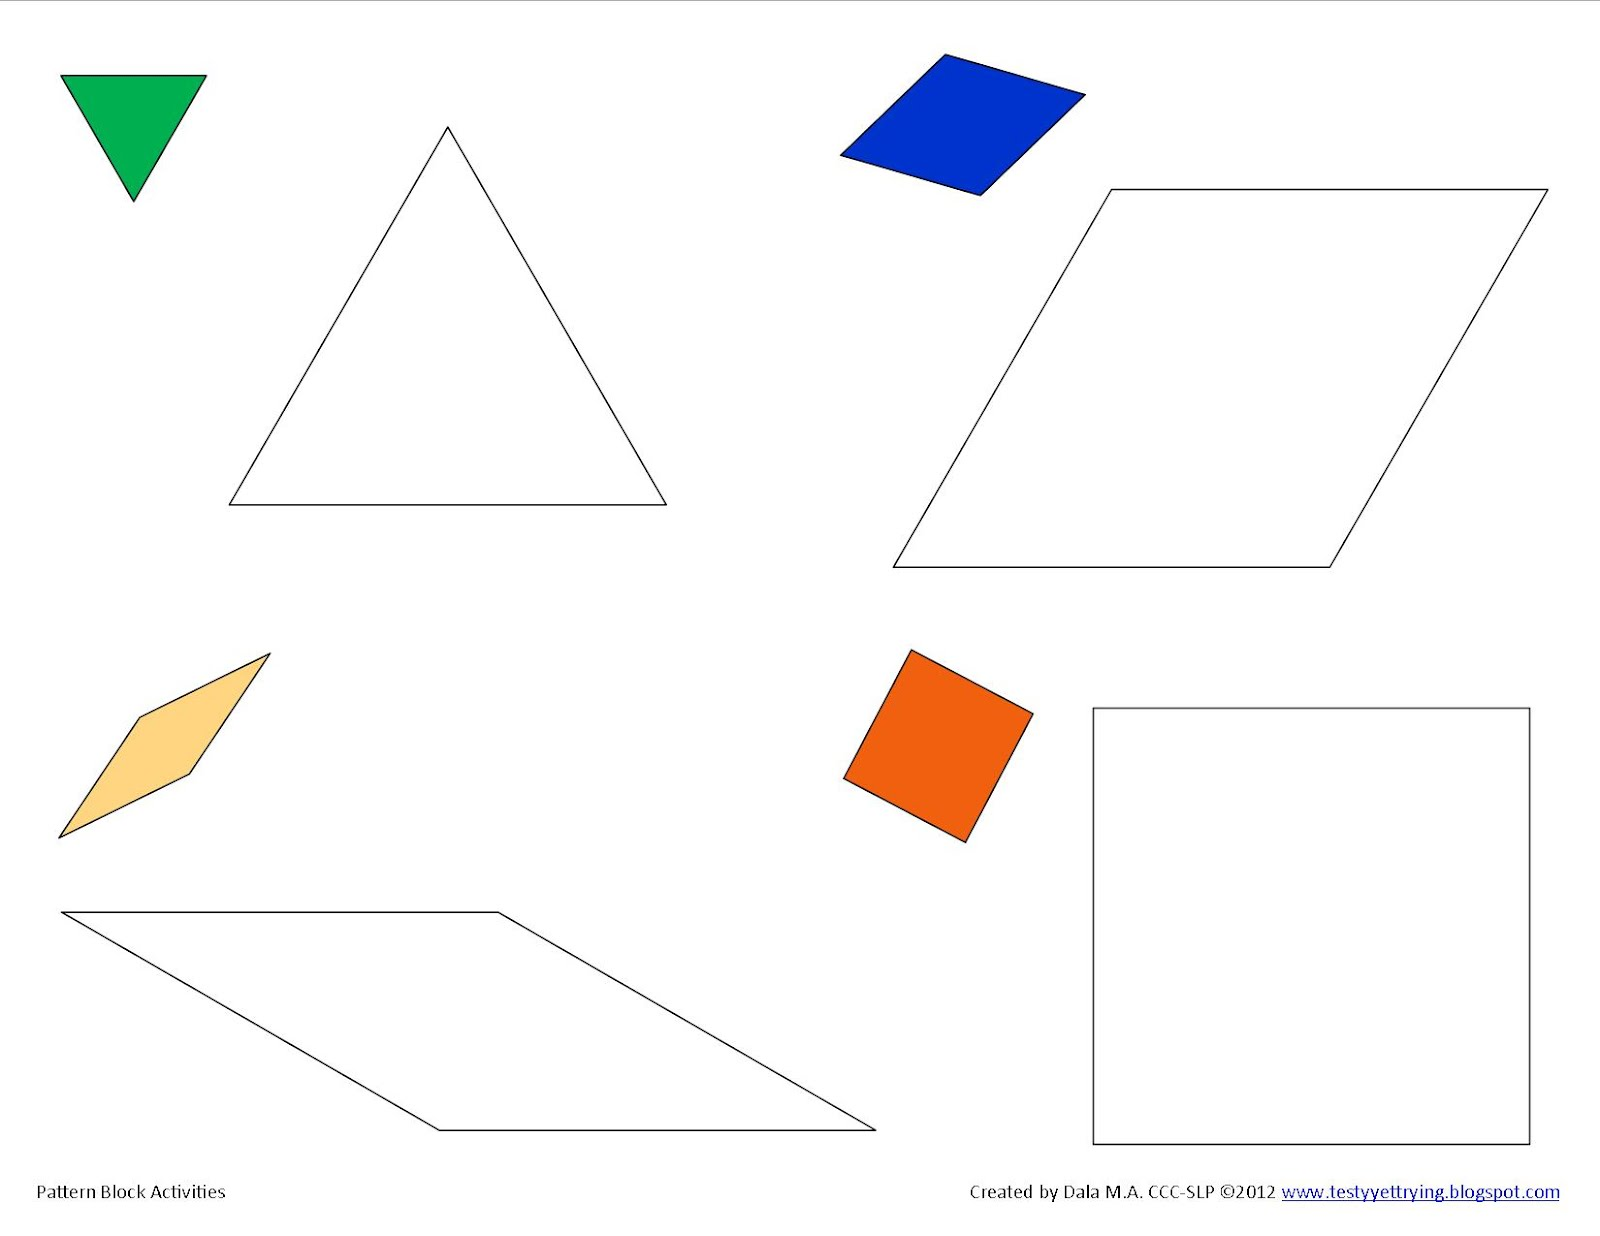 Testy Yet Trying Printable Pattern Block Activity Sheets